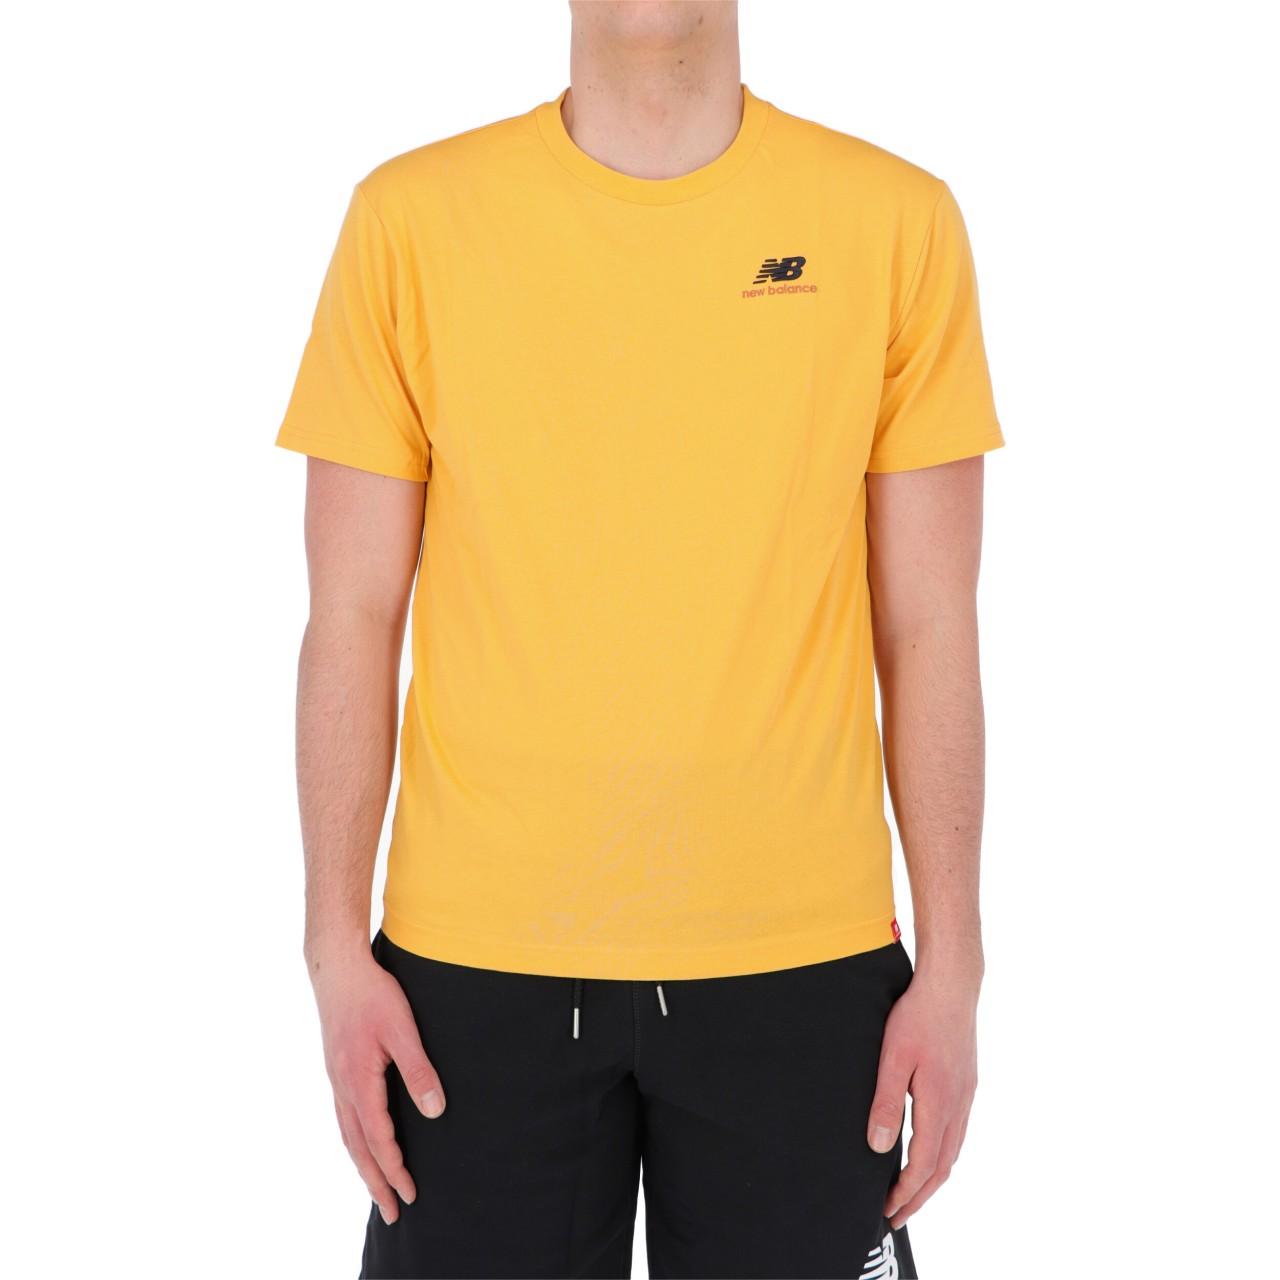 New balance Uomo Tshirt New Balance Uomo Essential Embroidered Tee 11592P